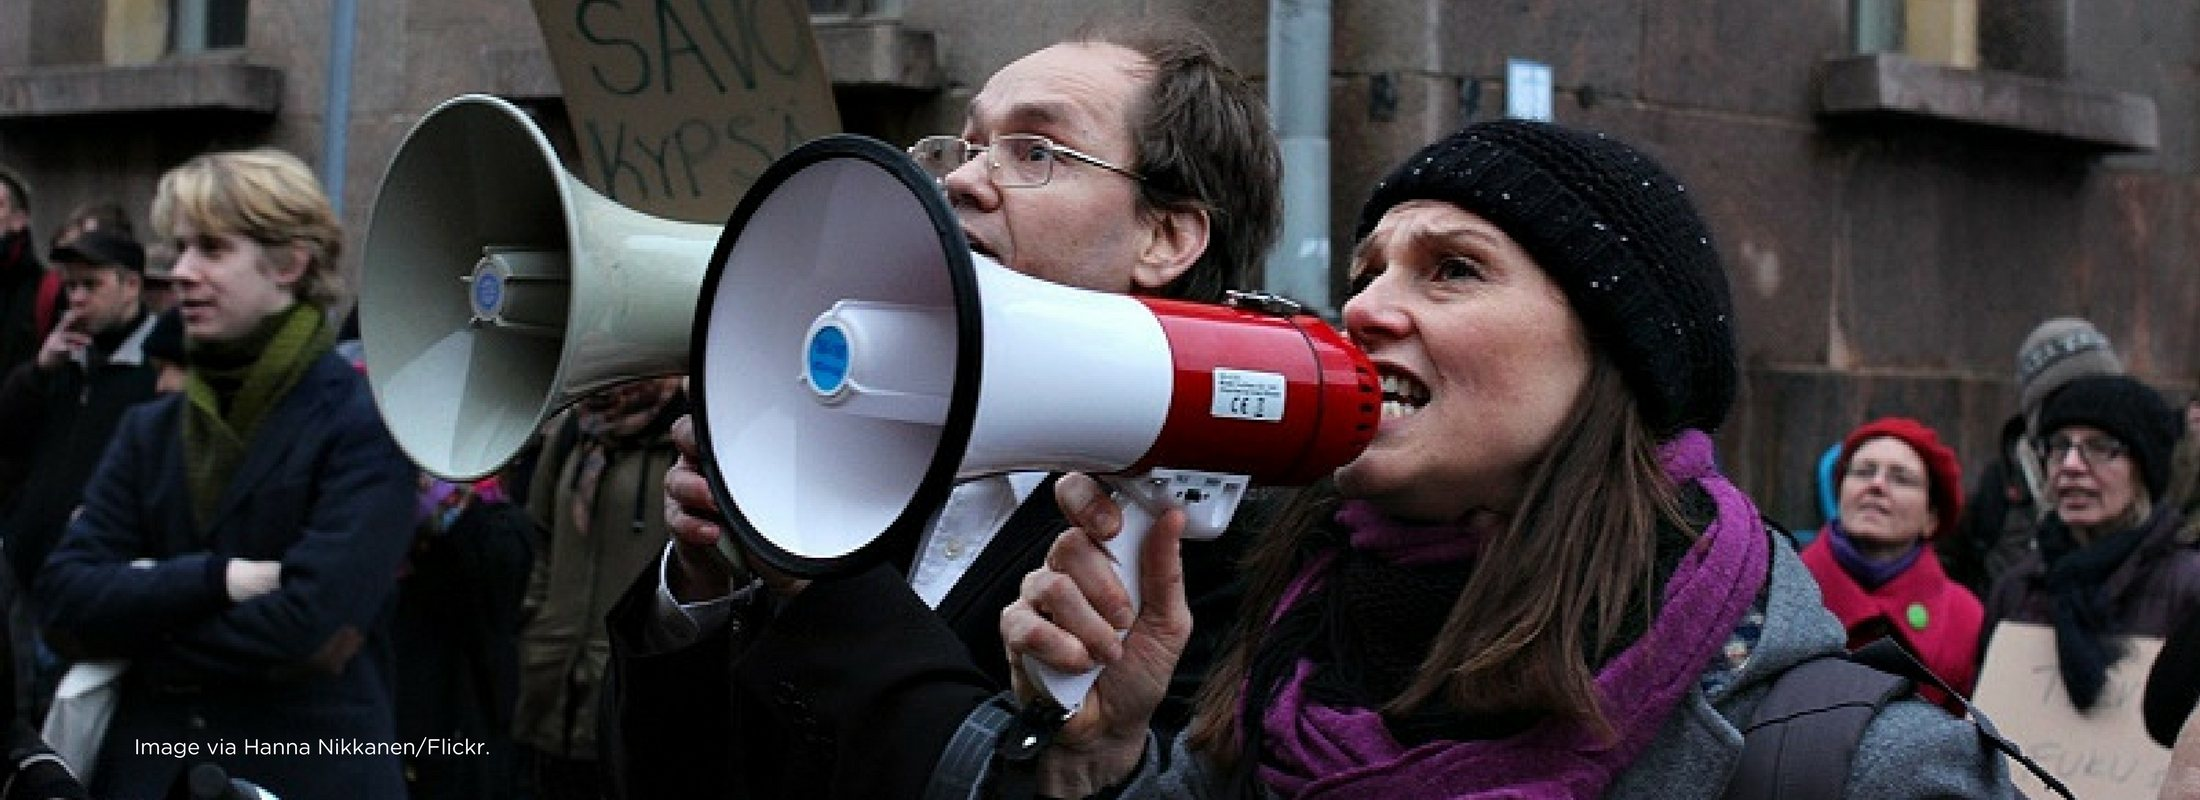 A group of protestors with two talking on megaphones